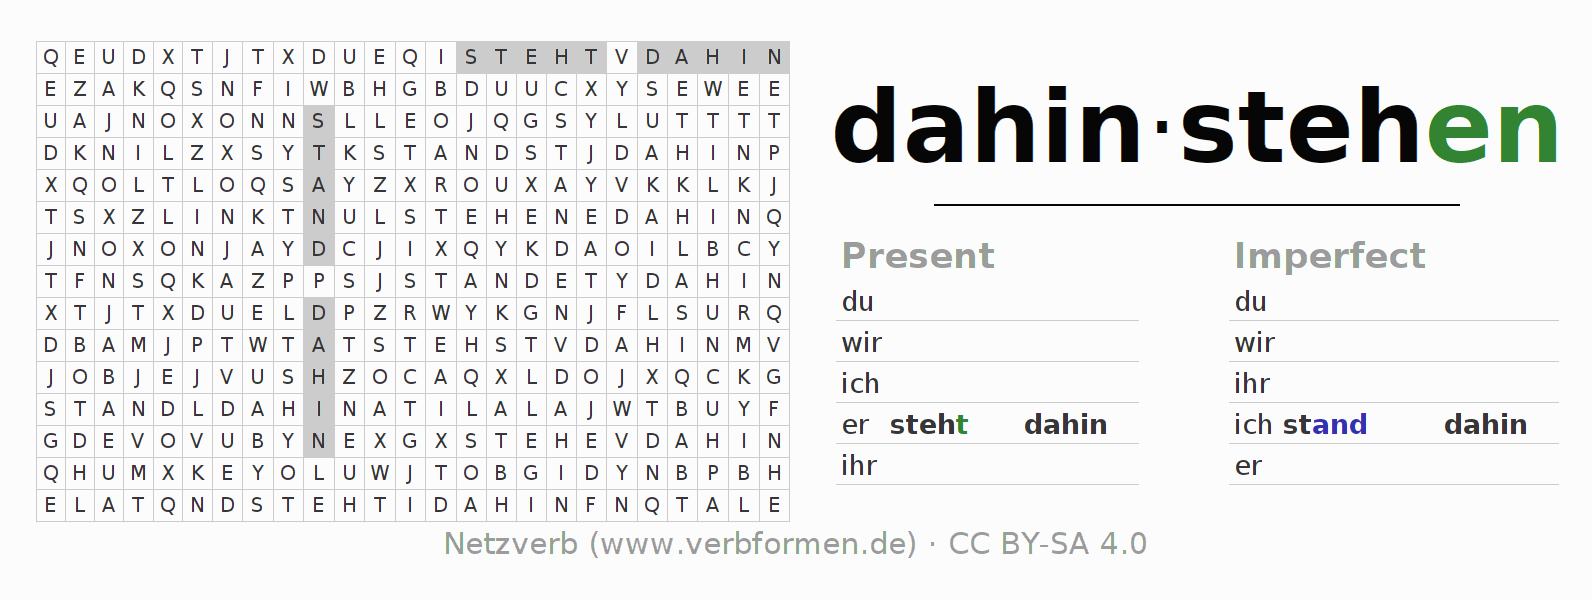 Word search puzzle for the conjugation of the verb dahinstehen (hat)